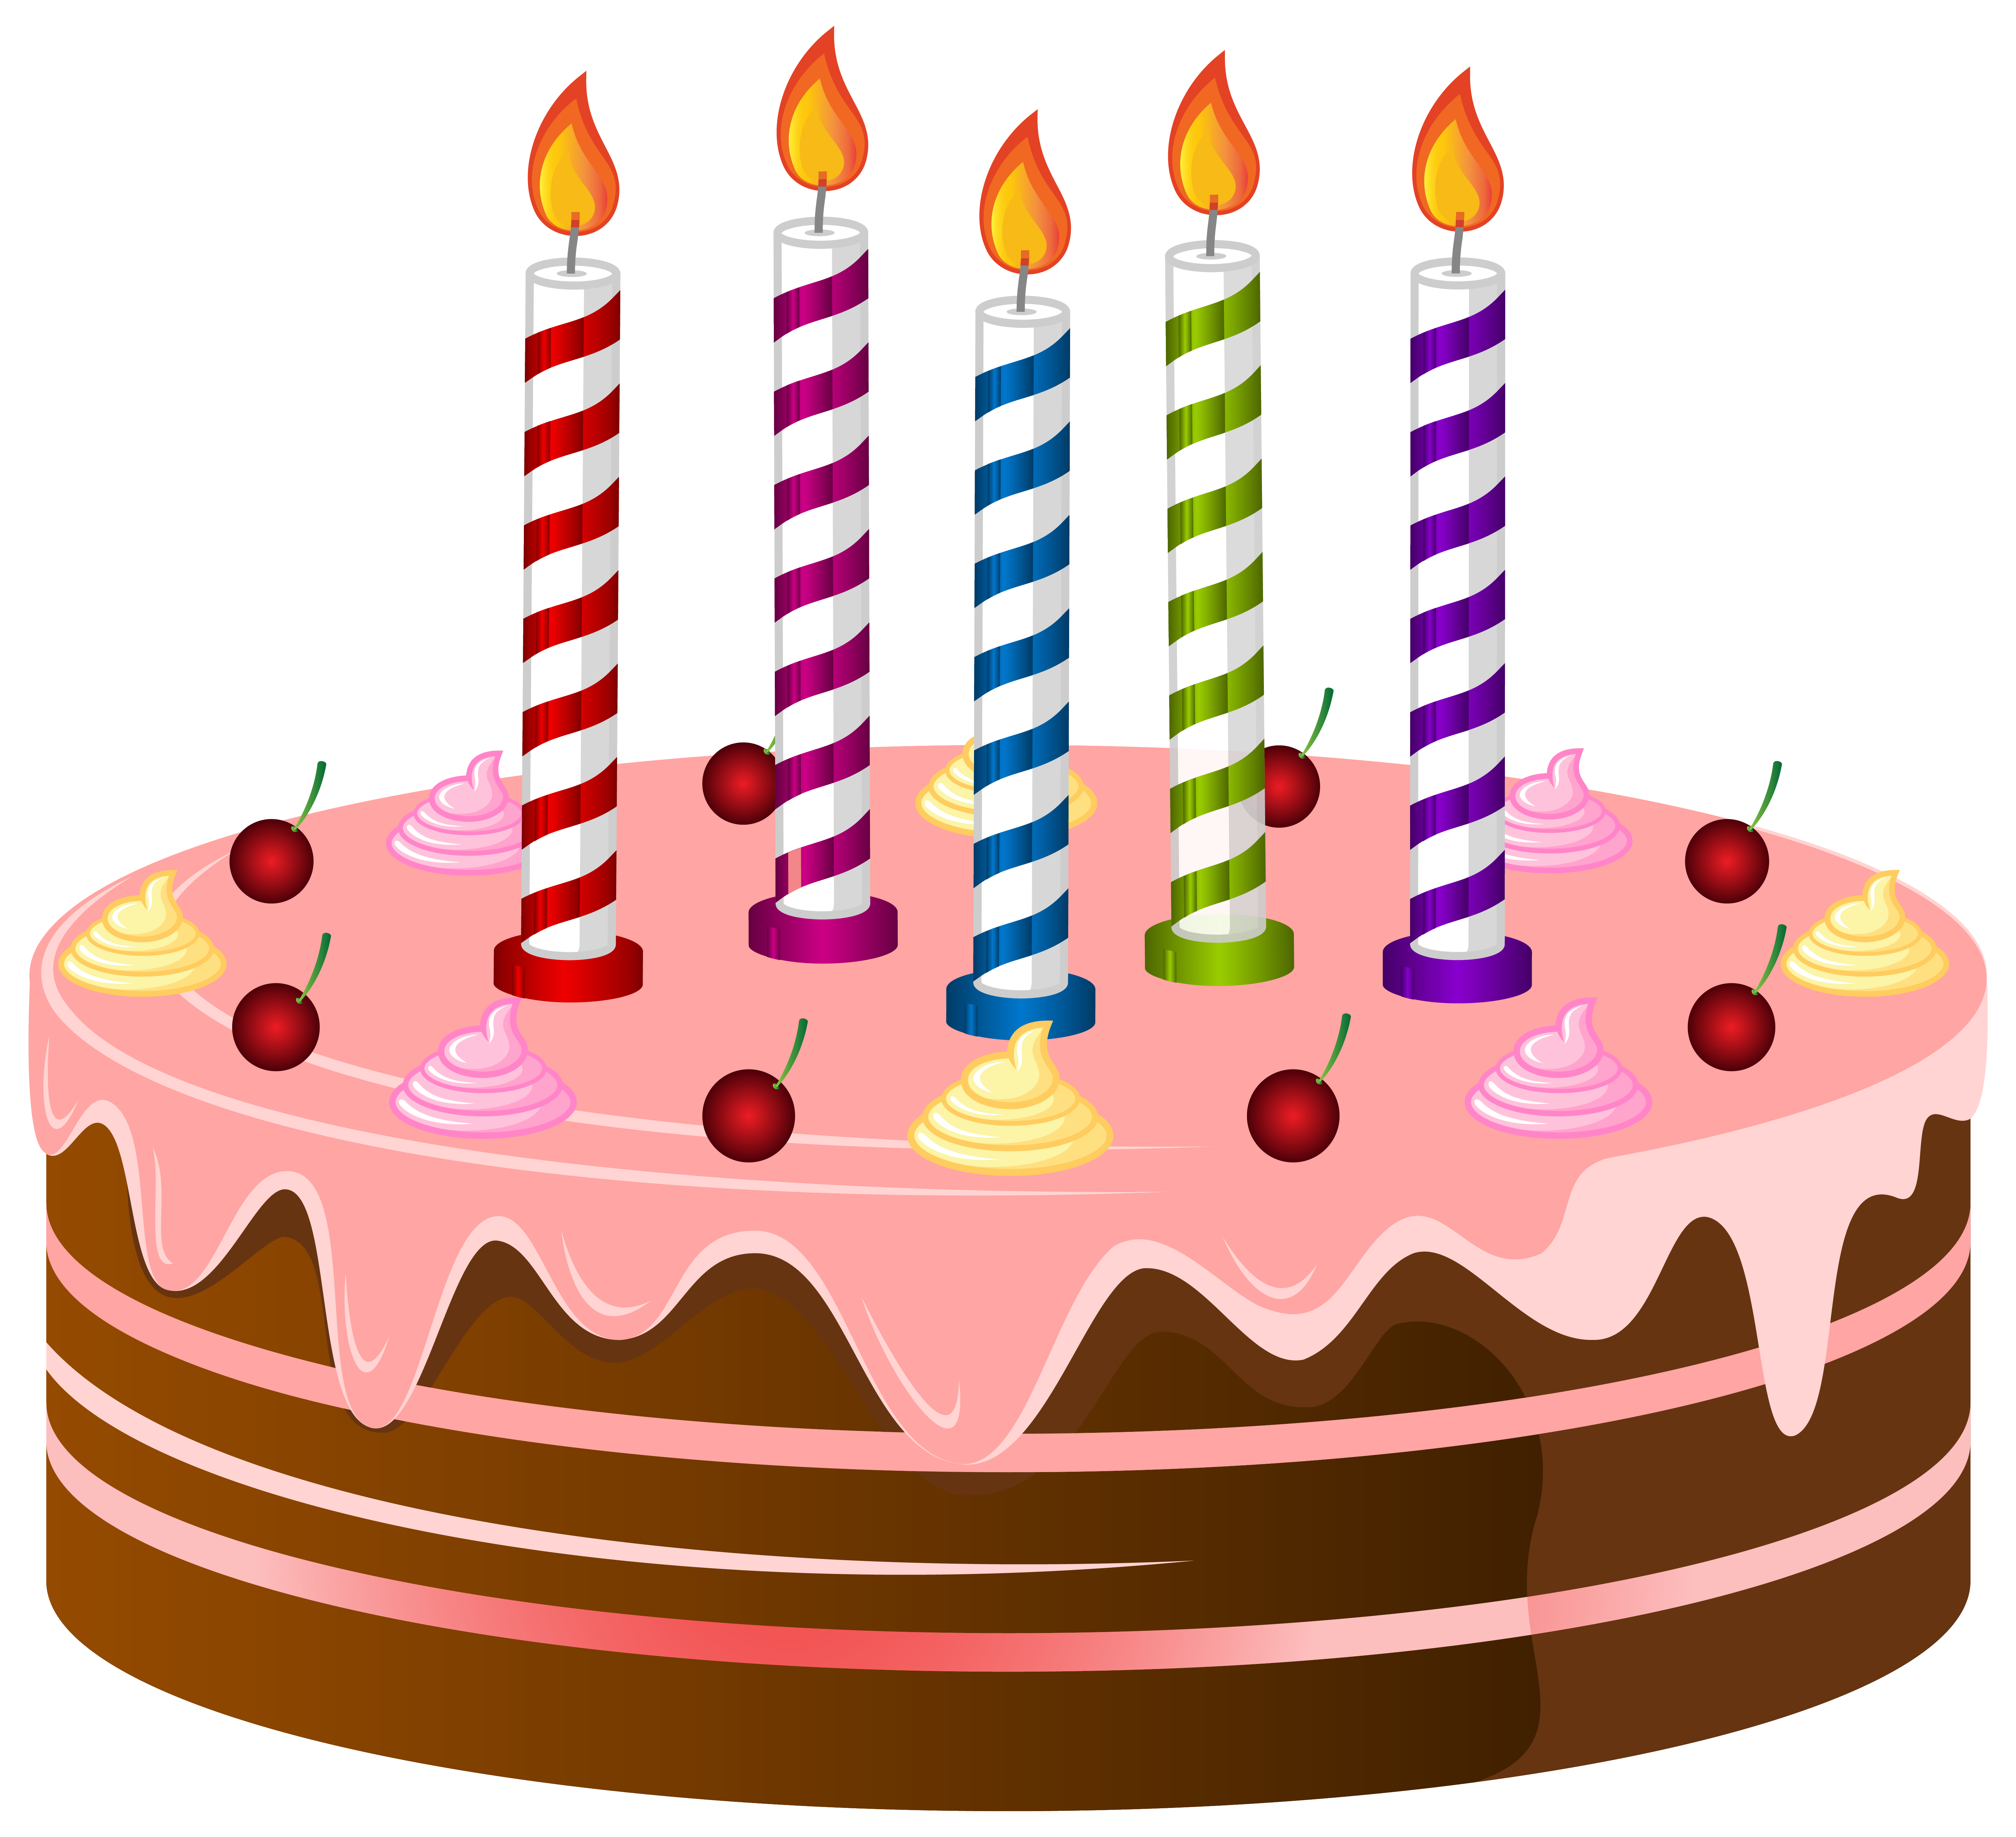 Free birthday cake clip art .